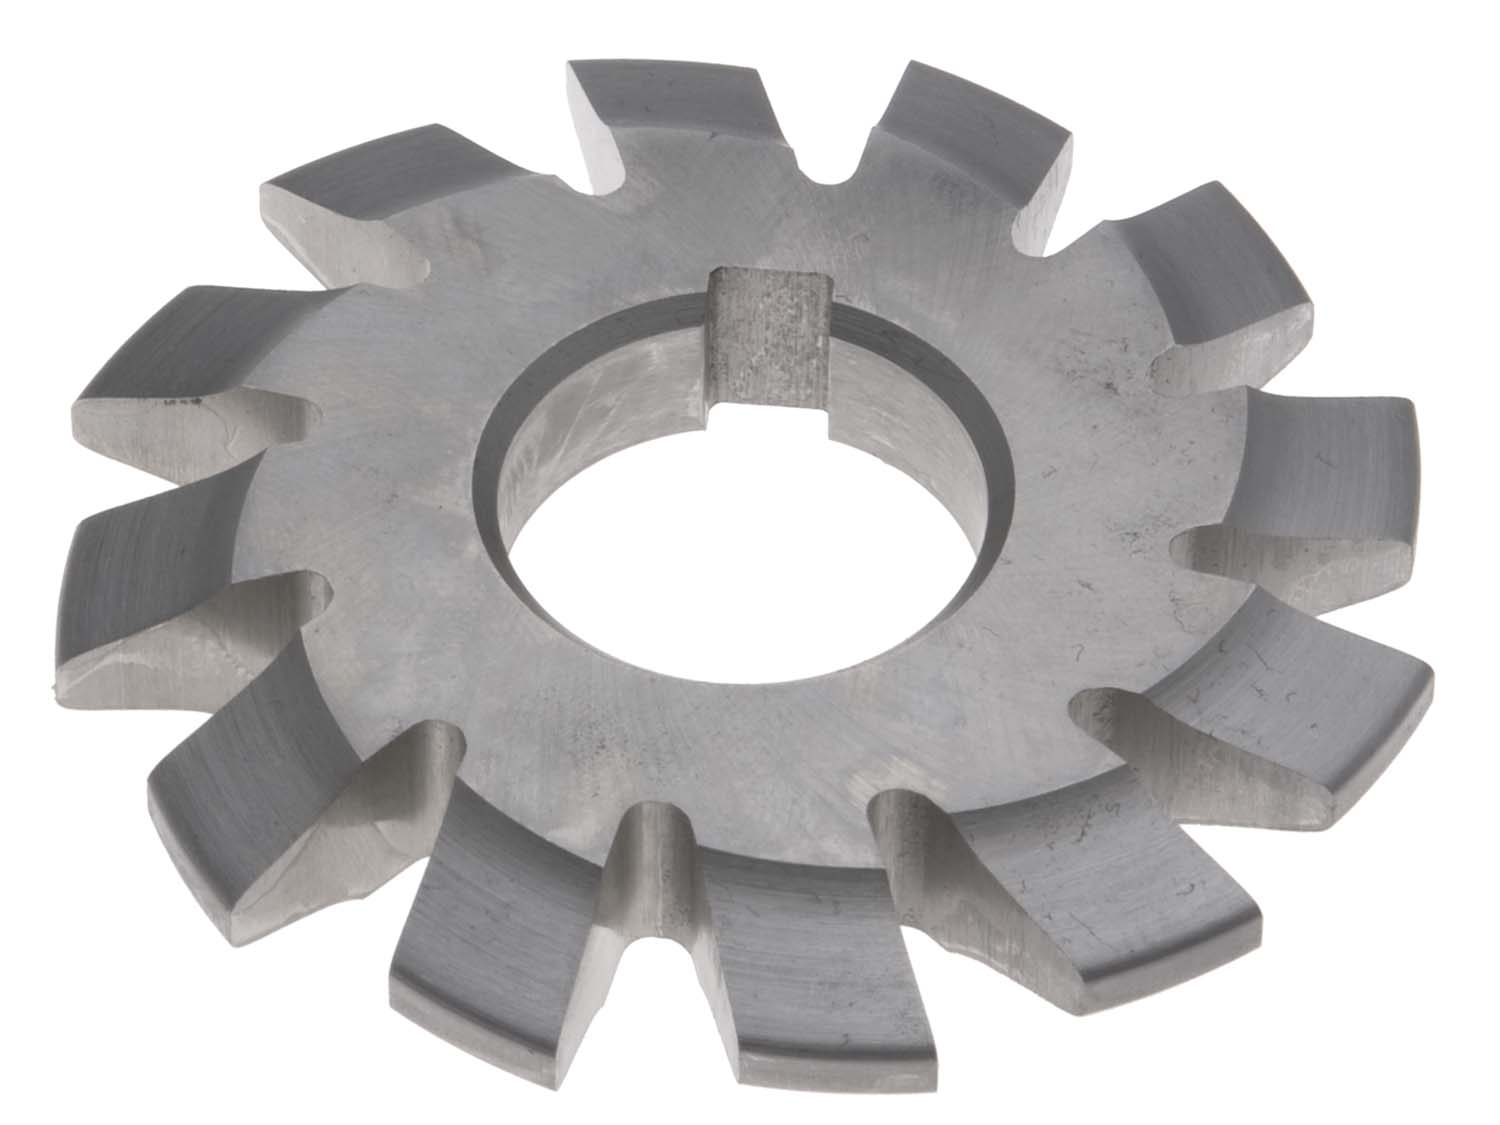 18 Diametral Pitch # 7  Involute Gear Cutter - 1 Inch ID - 14-1/2 Degree Pressure Angle